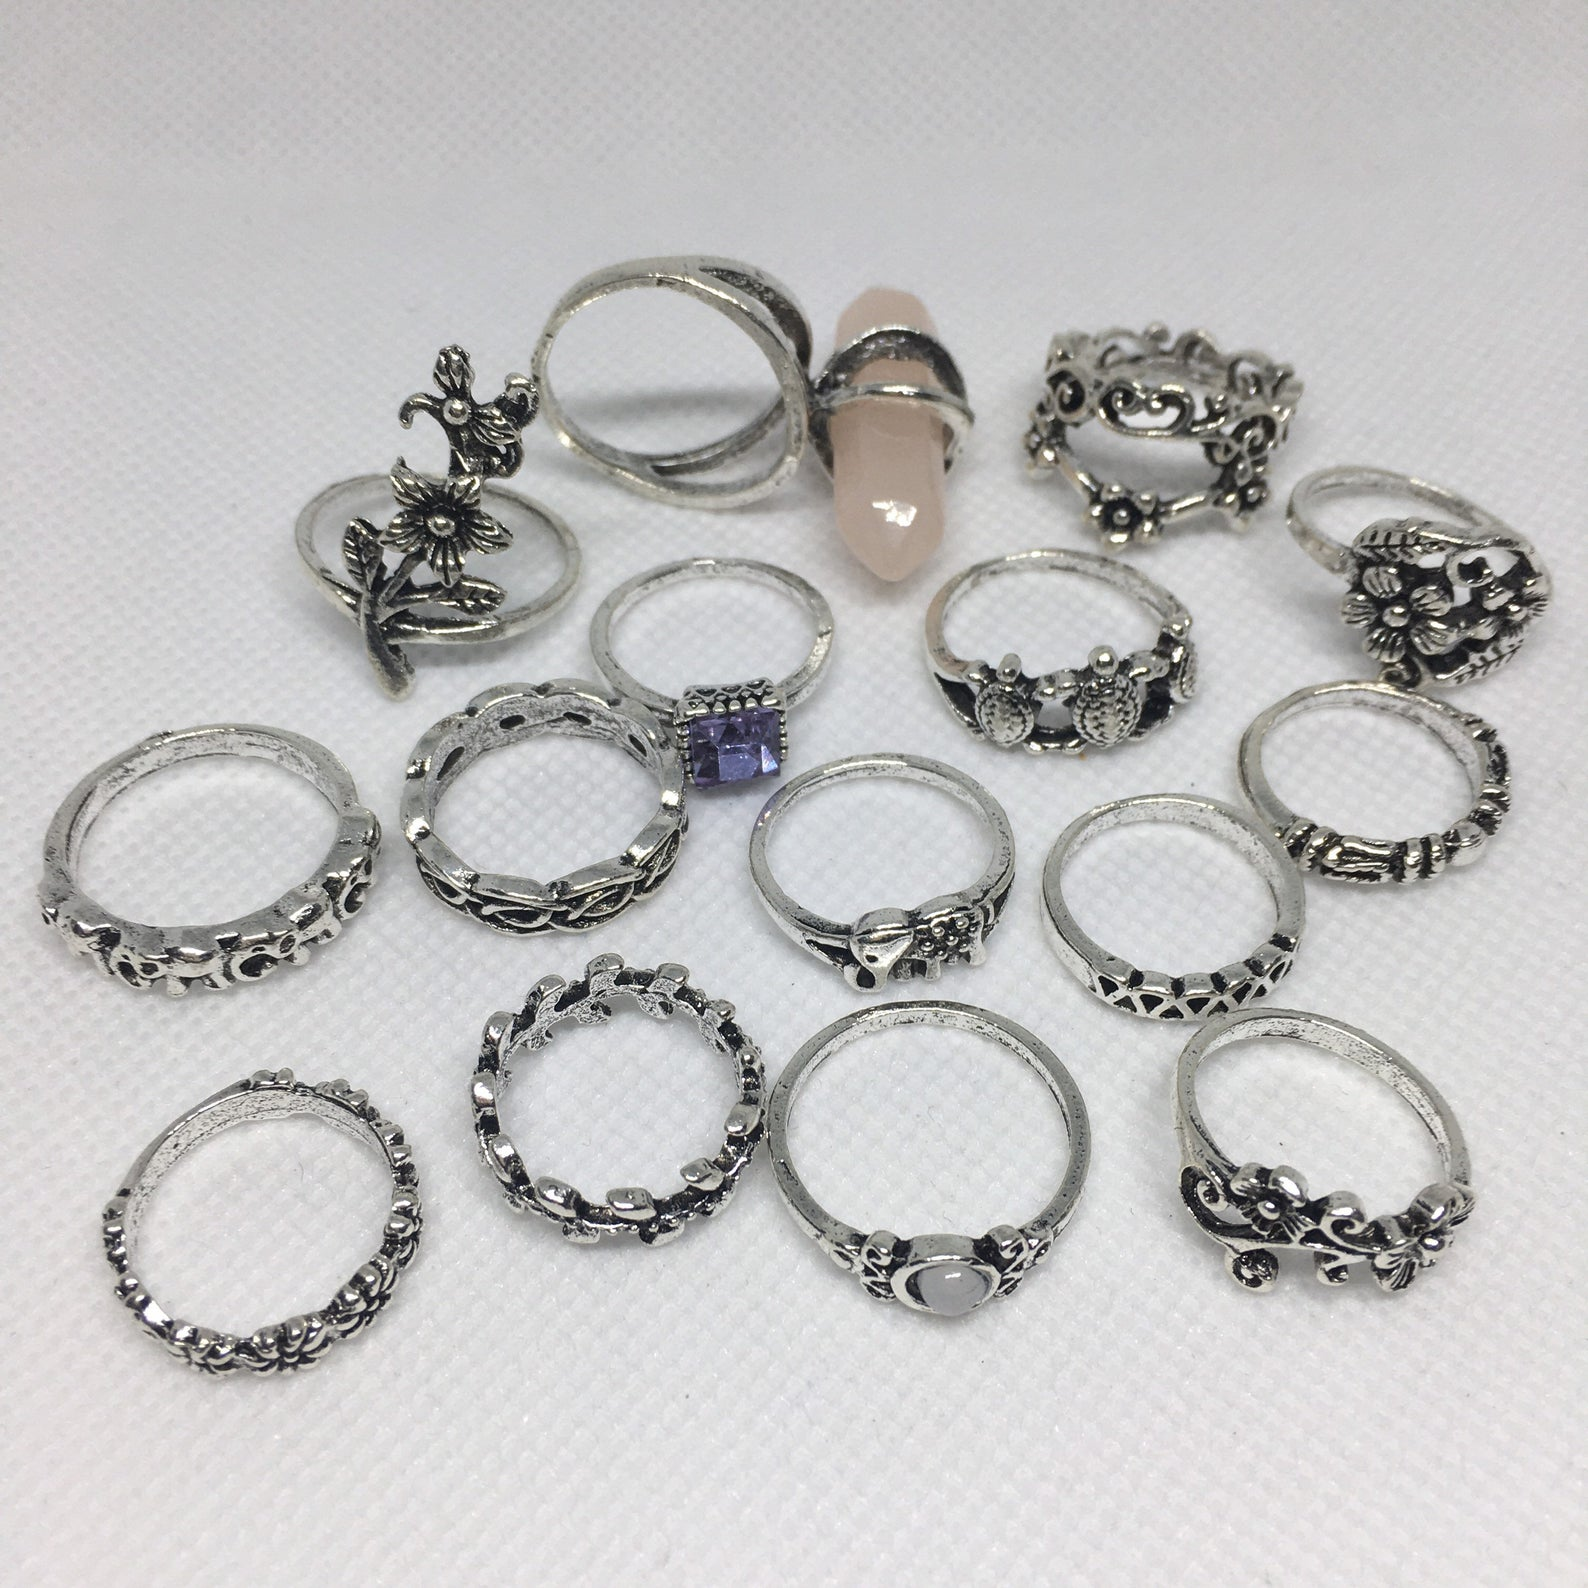 Assorted set of 15 bohemian rings. One has a pearl crystal hanging off it, another has a silver flower. Another has three consecutive turtles on the band. Many of them are simple silver rings with varied designs.